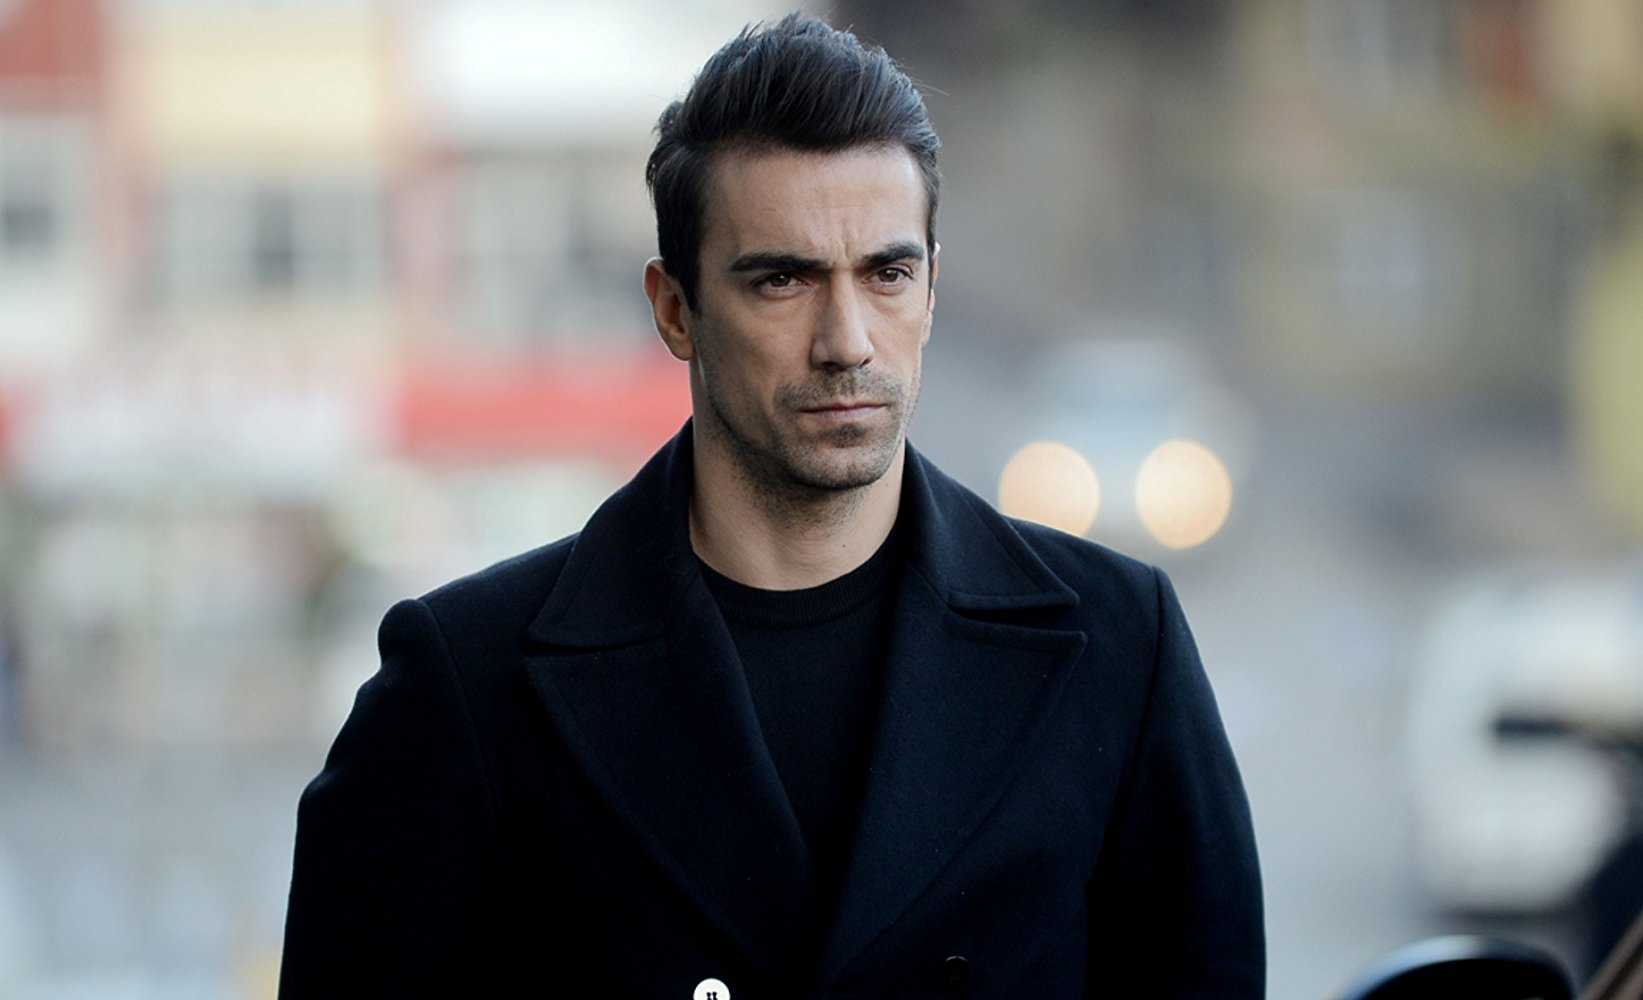 The handsome and charismatic Turkish actor İbrahim Çelikkol